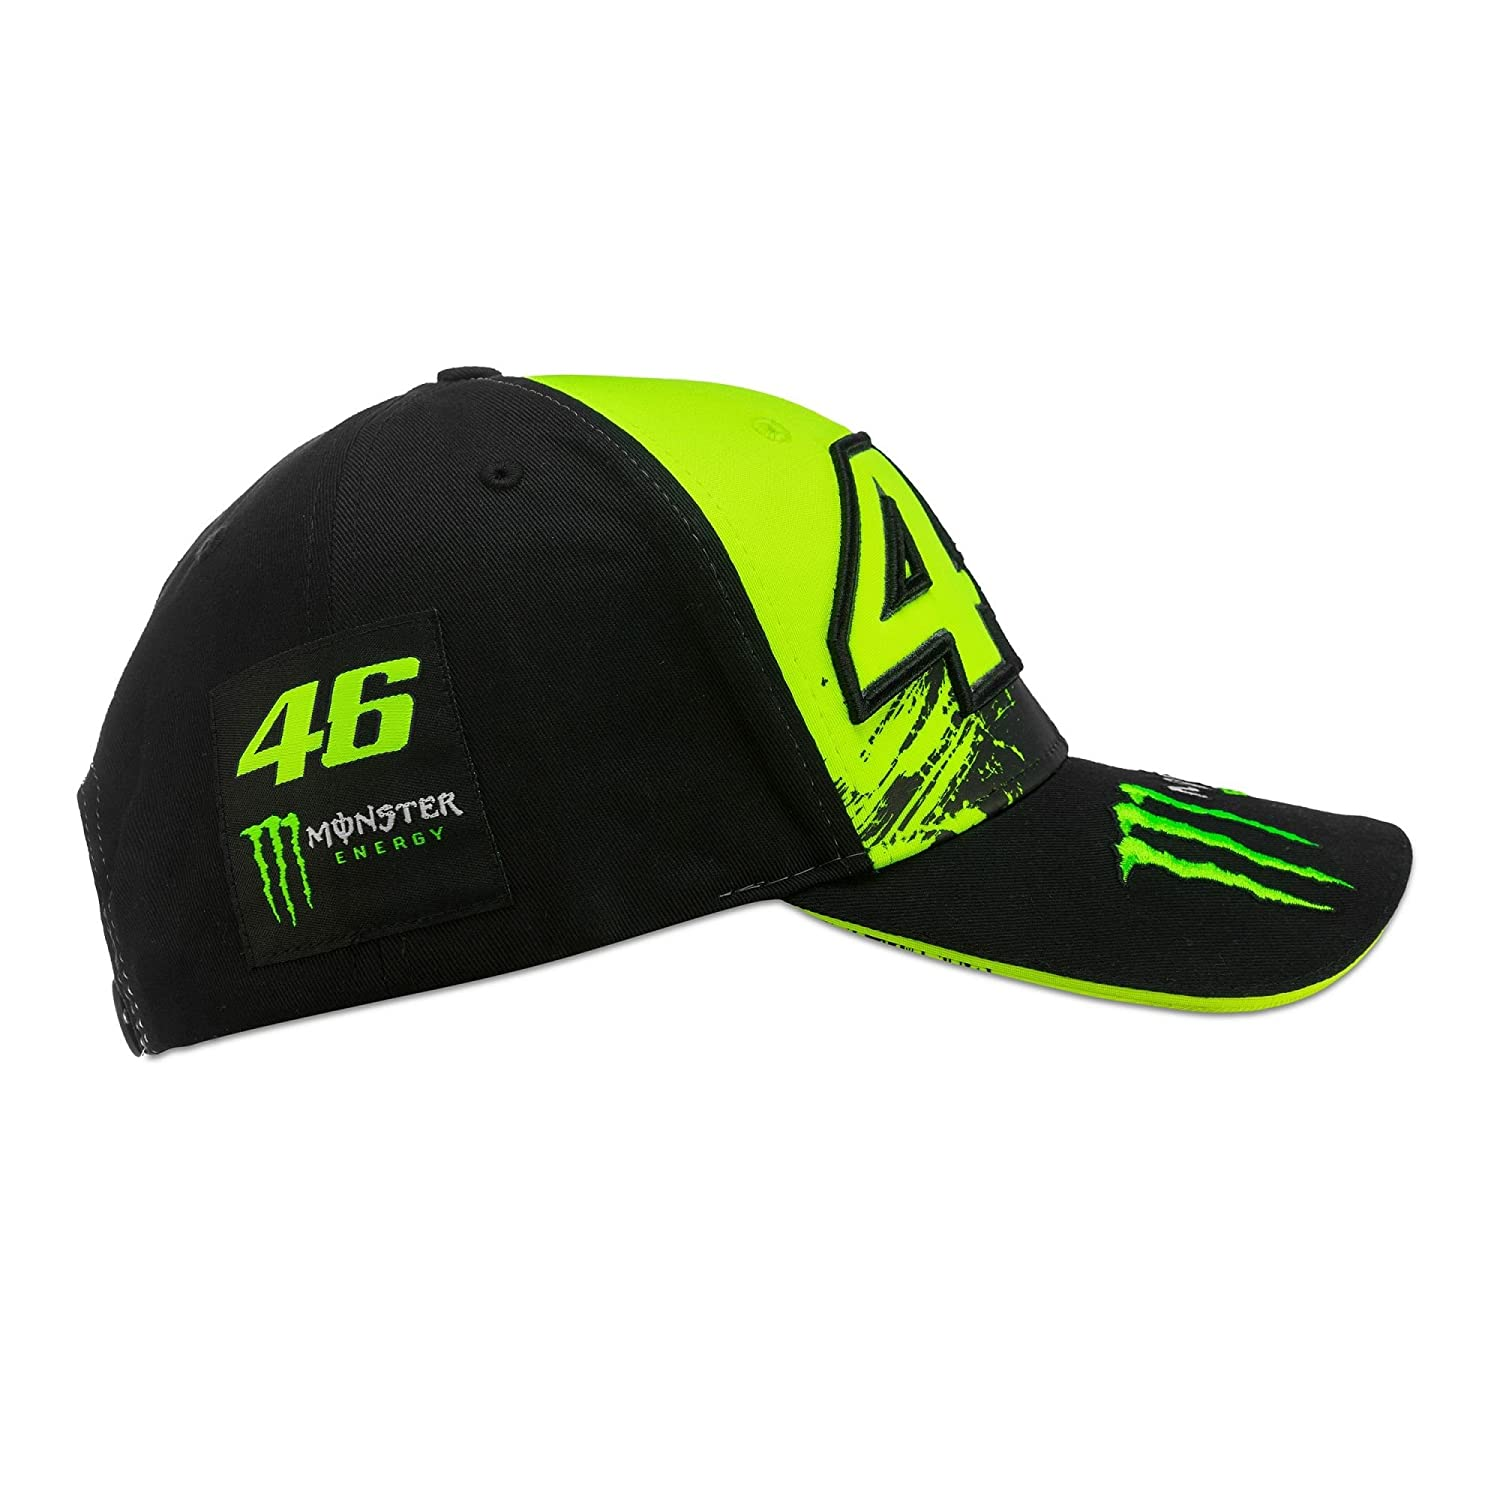 Valentino Rossi VR46 Moto GP Monster Energy Replica Berretto Ufficiale  2018  Amazon.it  Sport e tempo libero 3bb7f55265ba